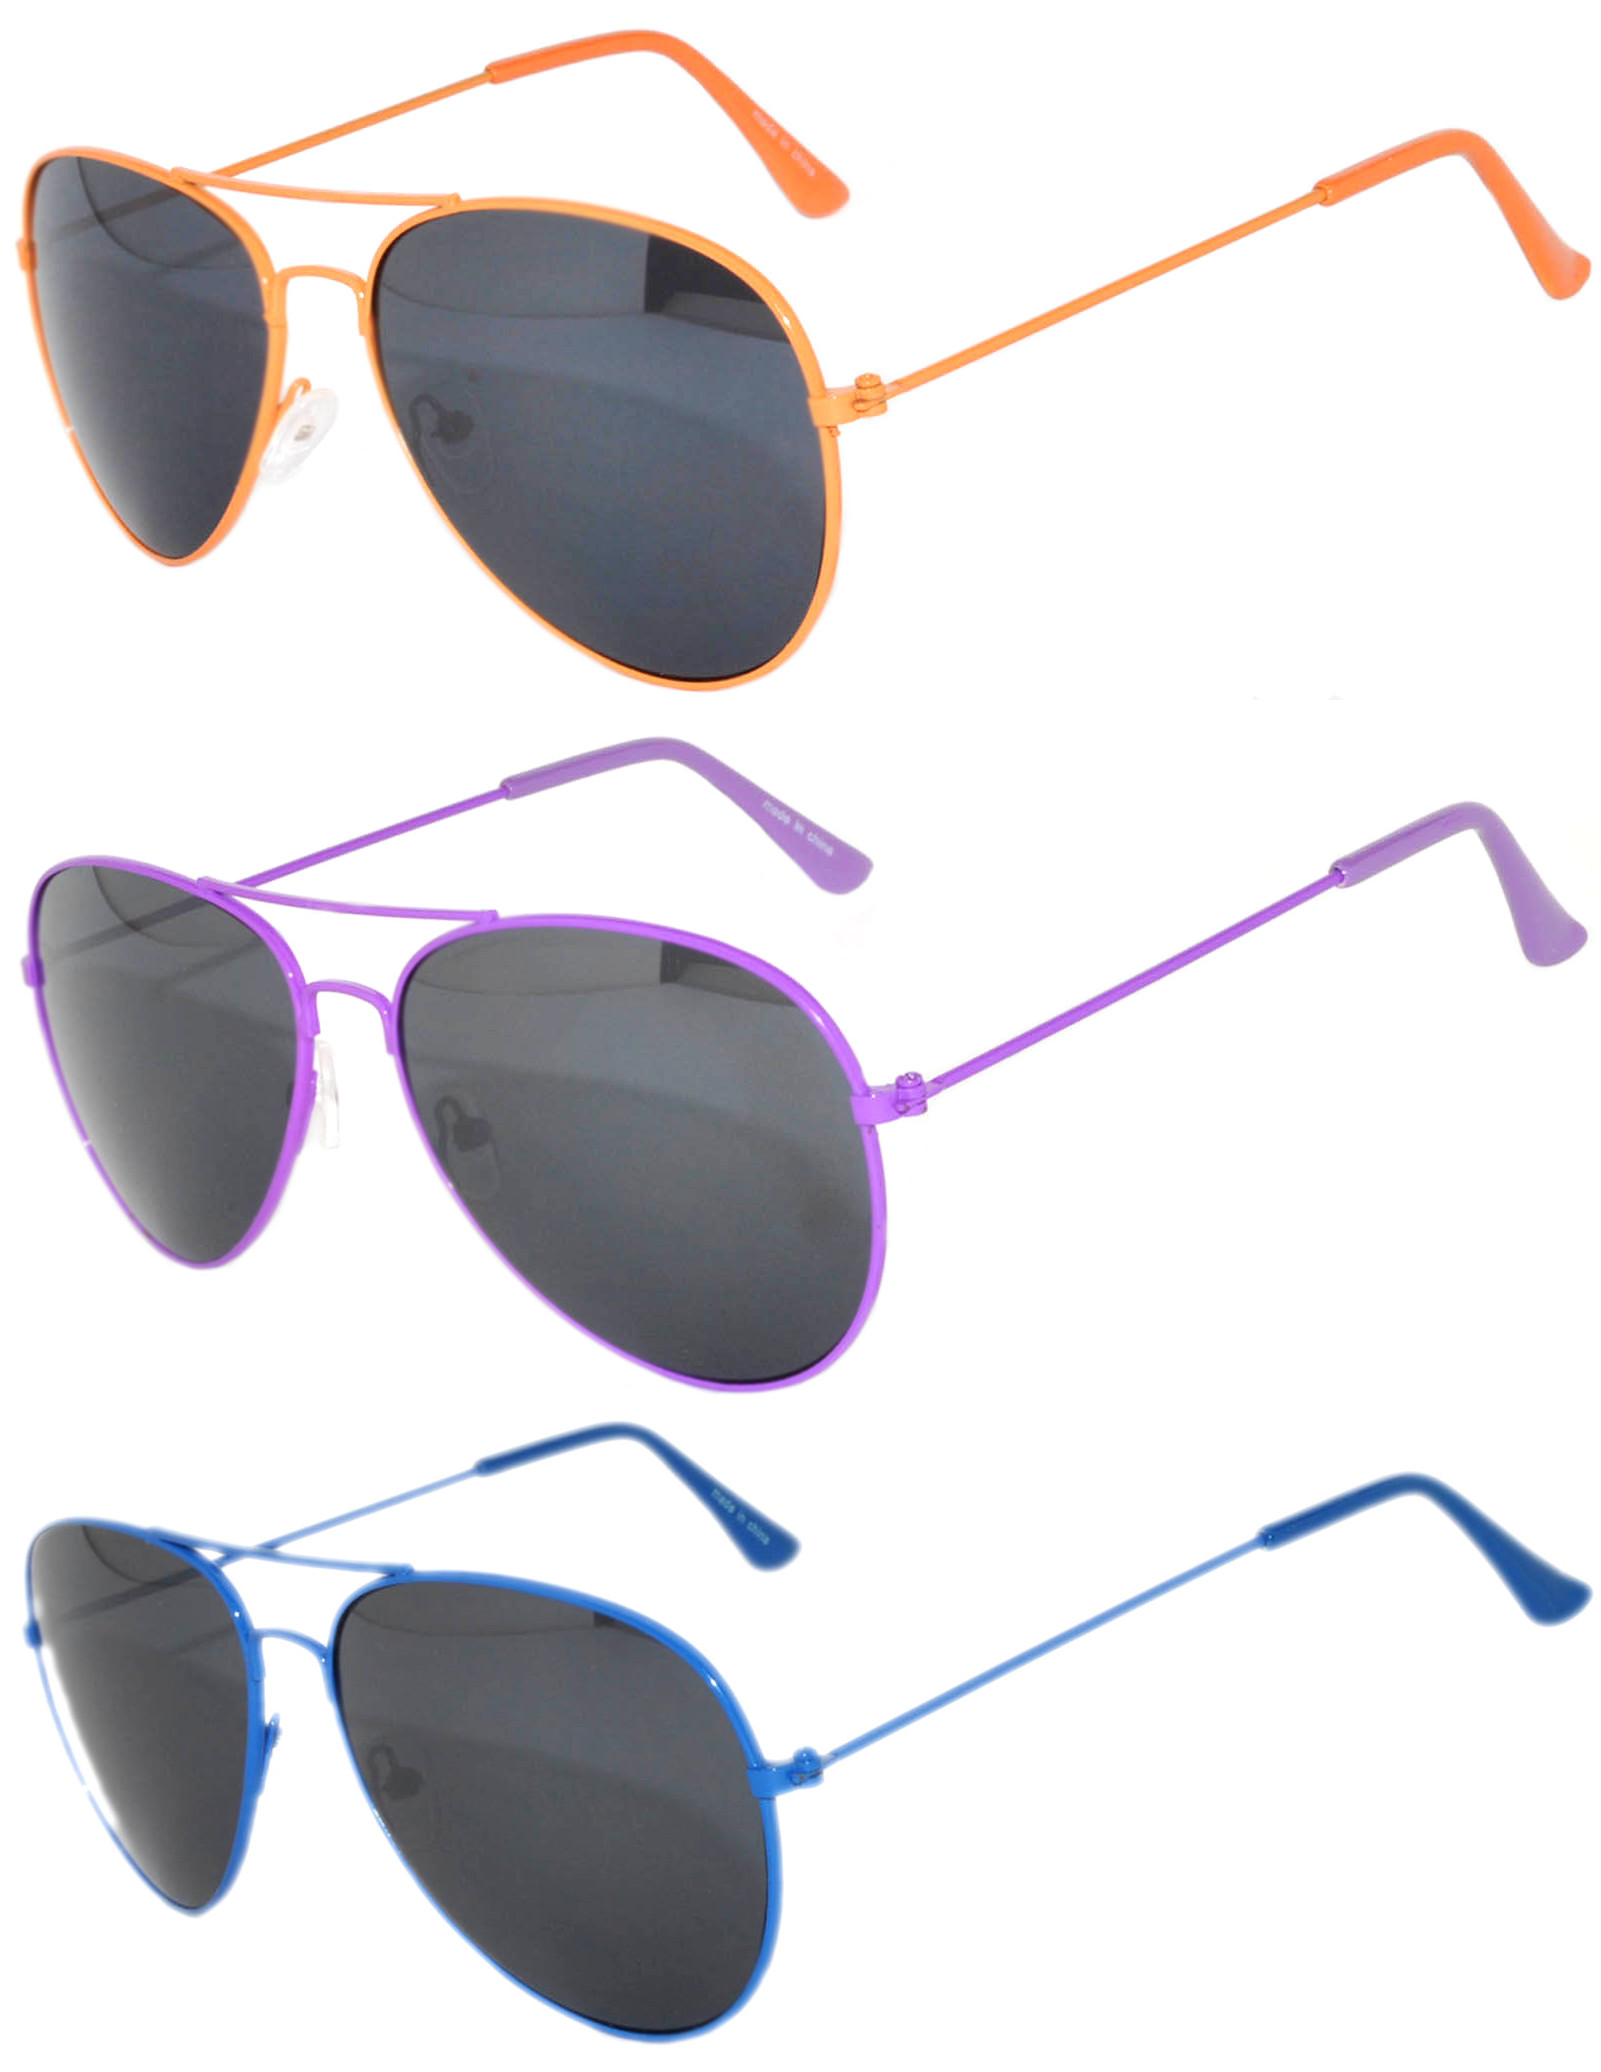 Aviator Style Sunglasses Colored Metal Frame Spring Hinges OWL (3 Pack)